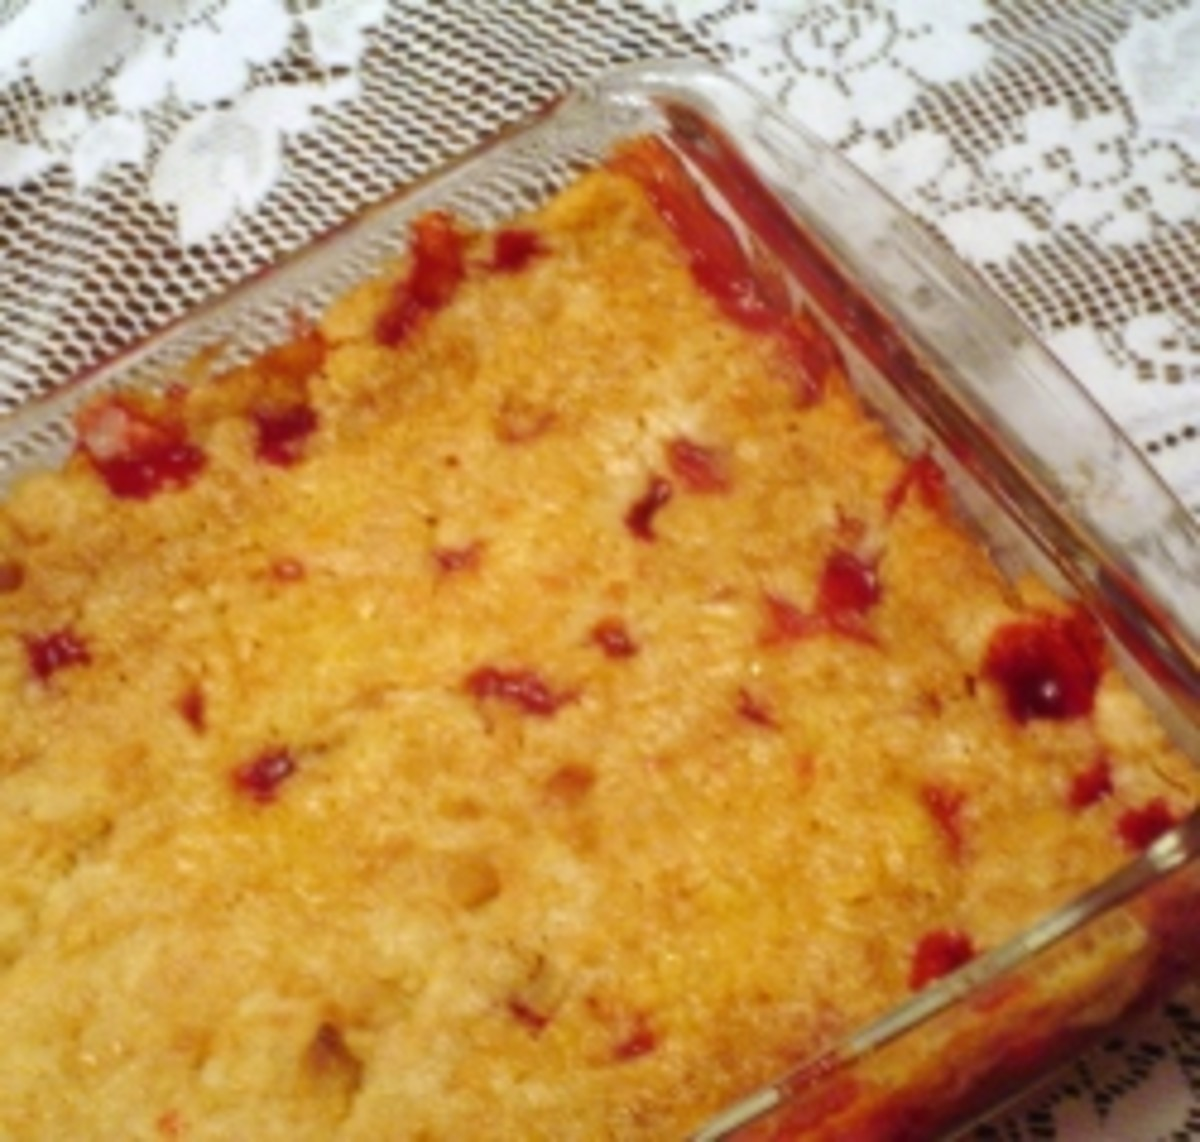 Delicious Dump Cake - A Family Favorite!